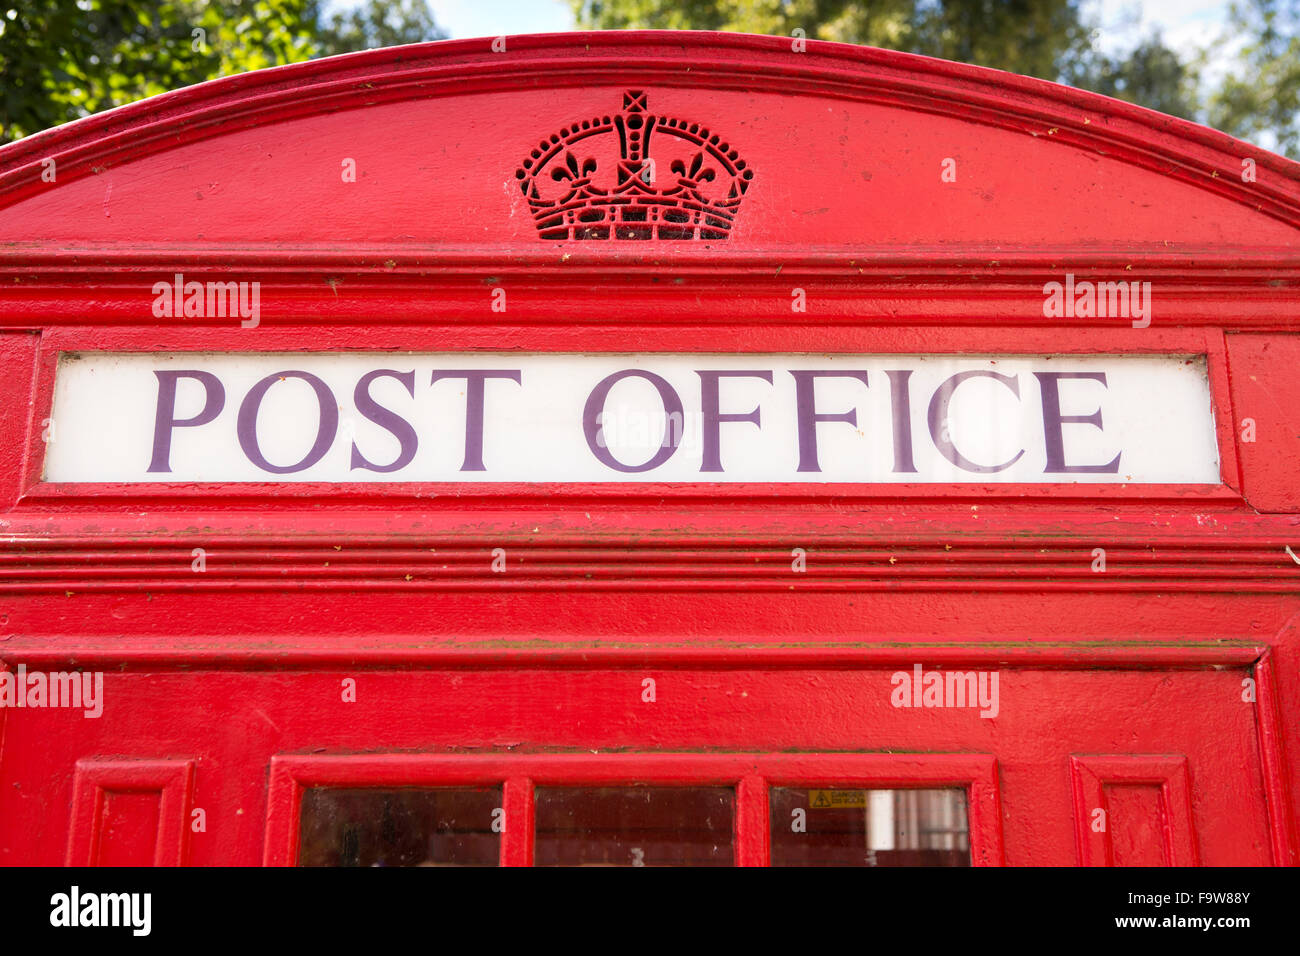 UK, England, Worcestershire, Bromsgrove, Avoncroft Museum, National Telephone Kiosk Collection, Post Office sign - Stock Image